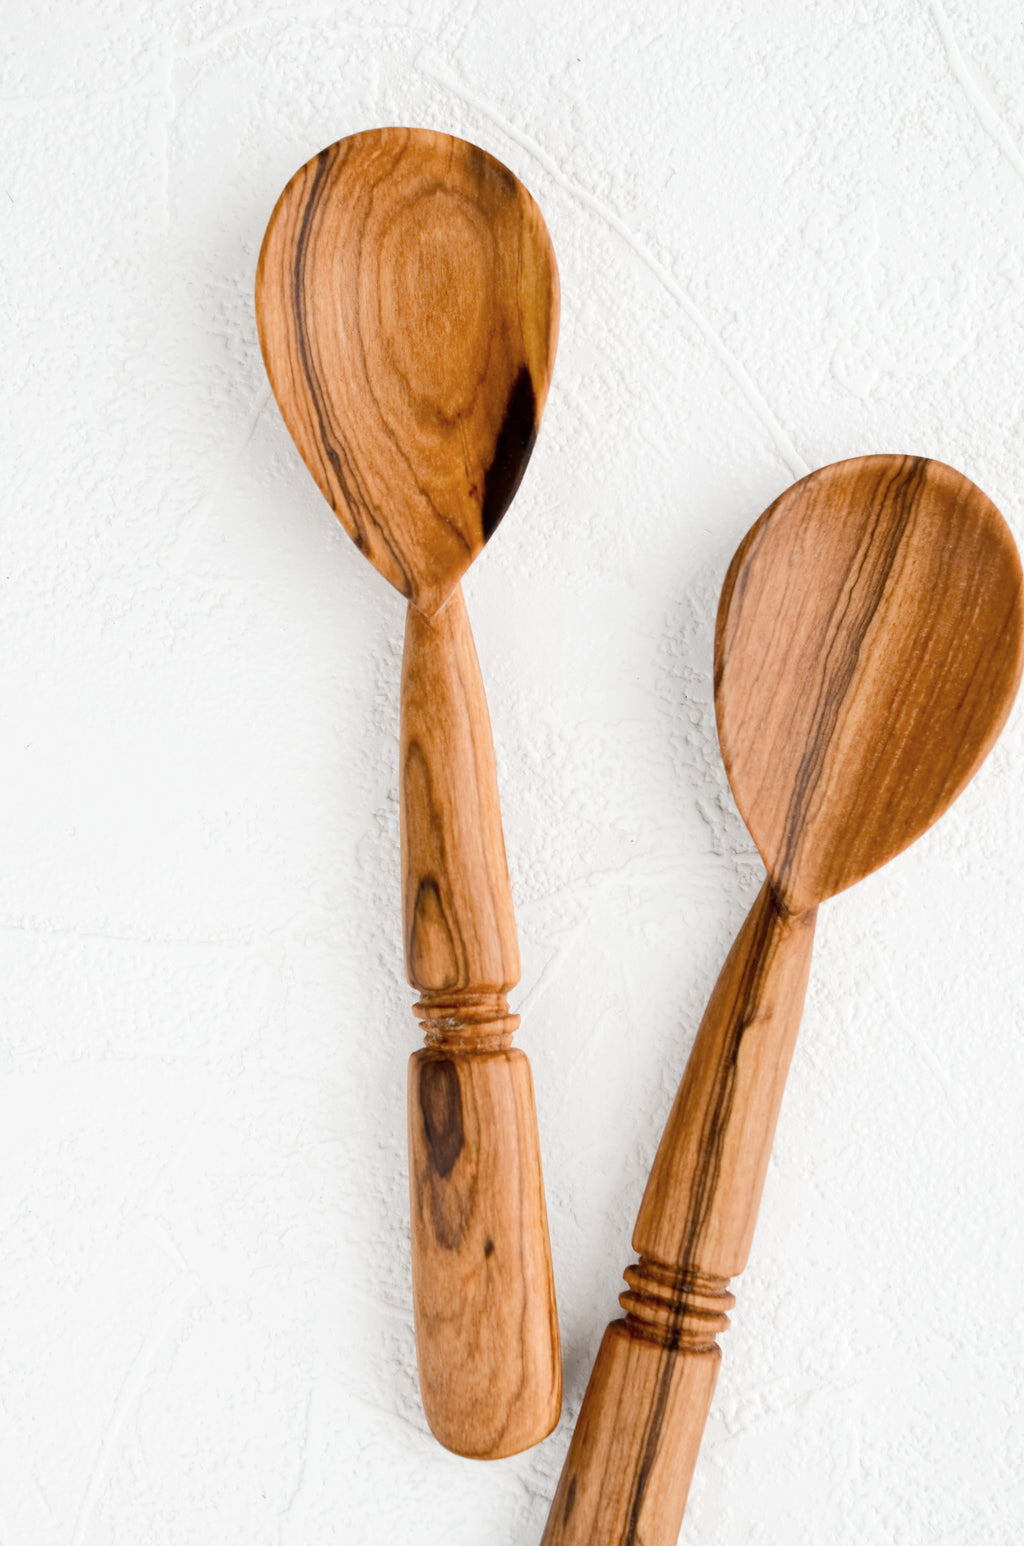 1: Two hand-carved spoons made from olivewood, each with its own unique grain pattern.